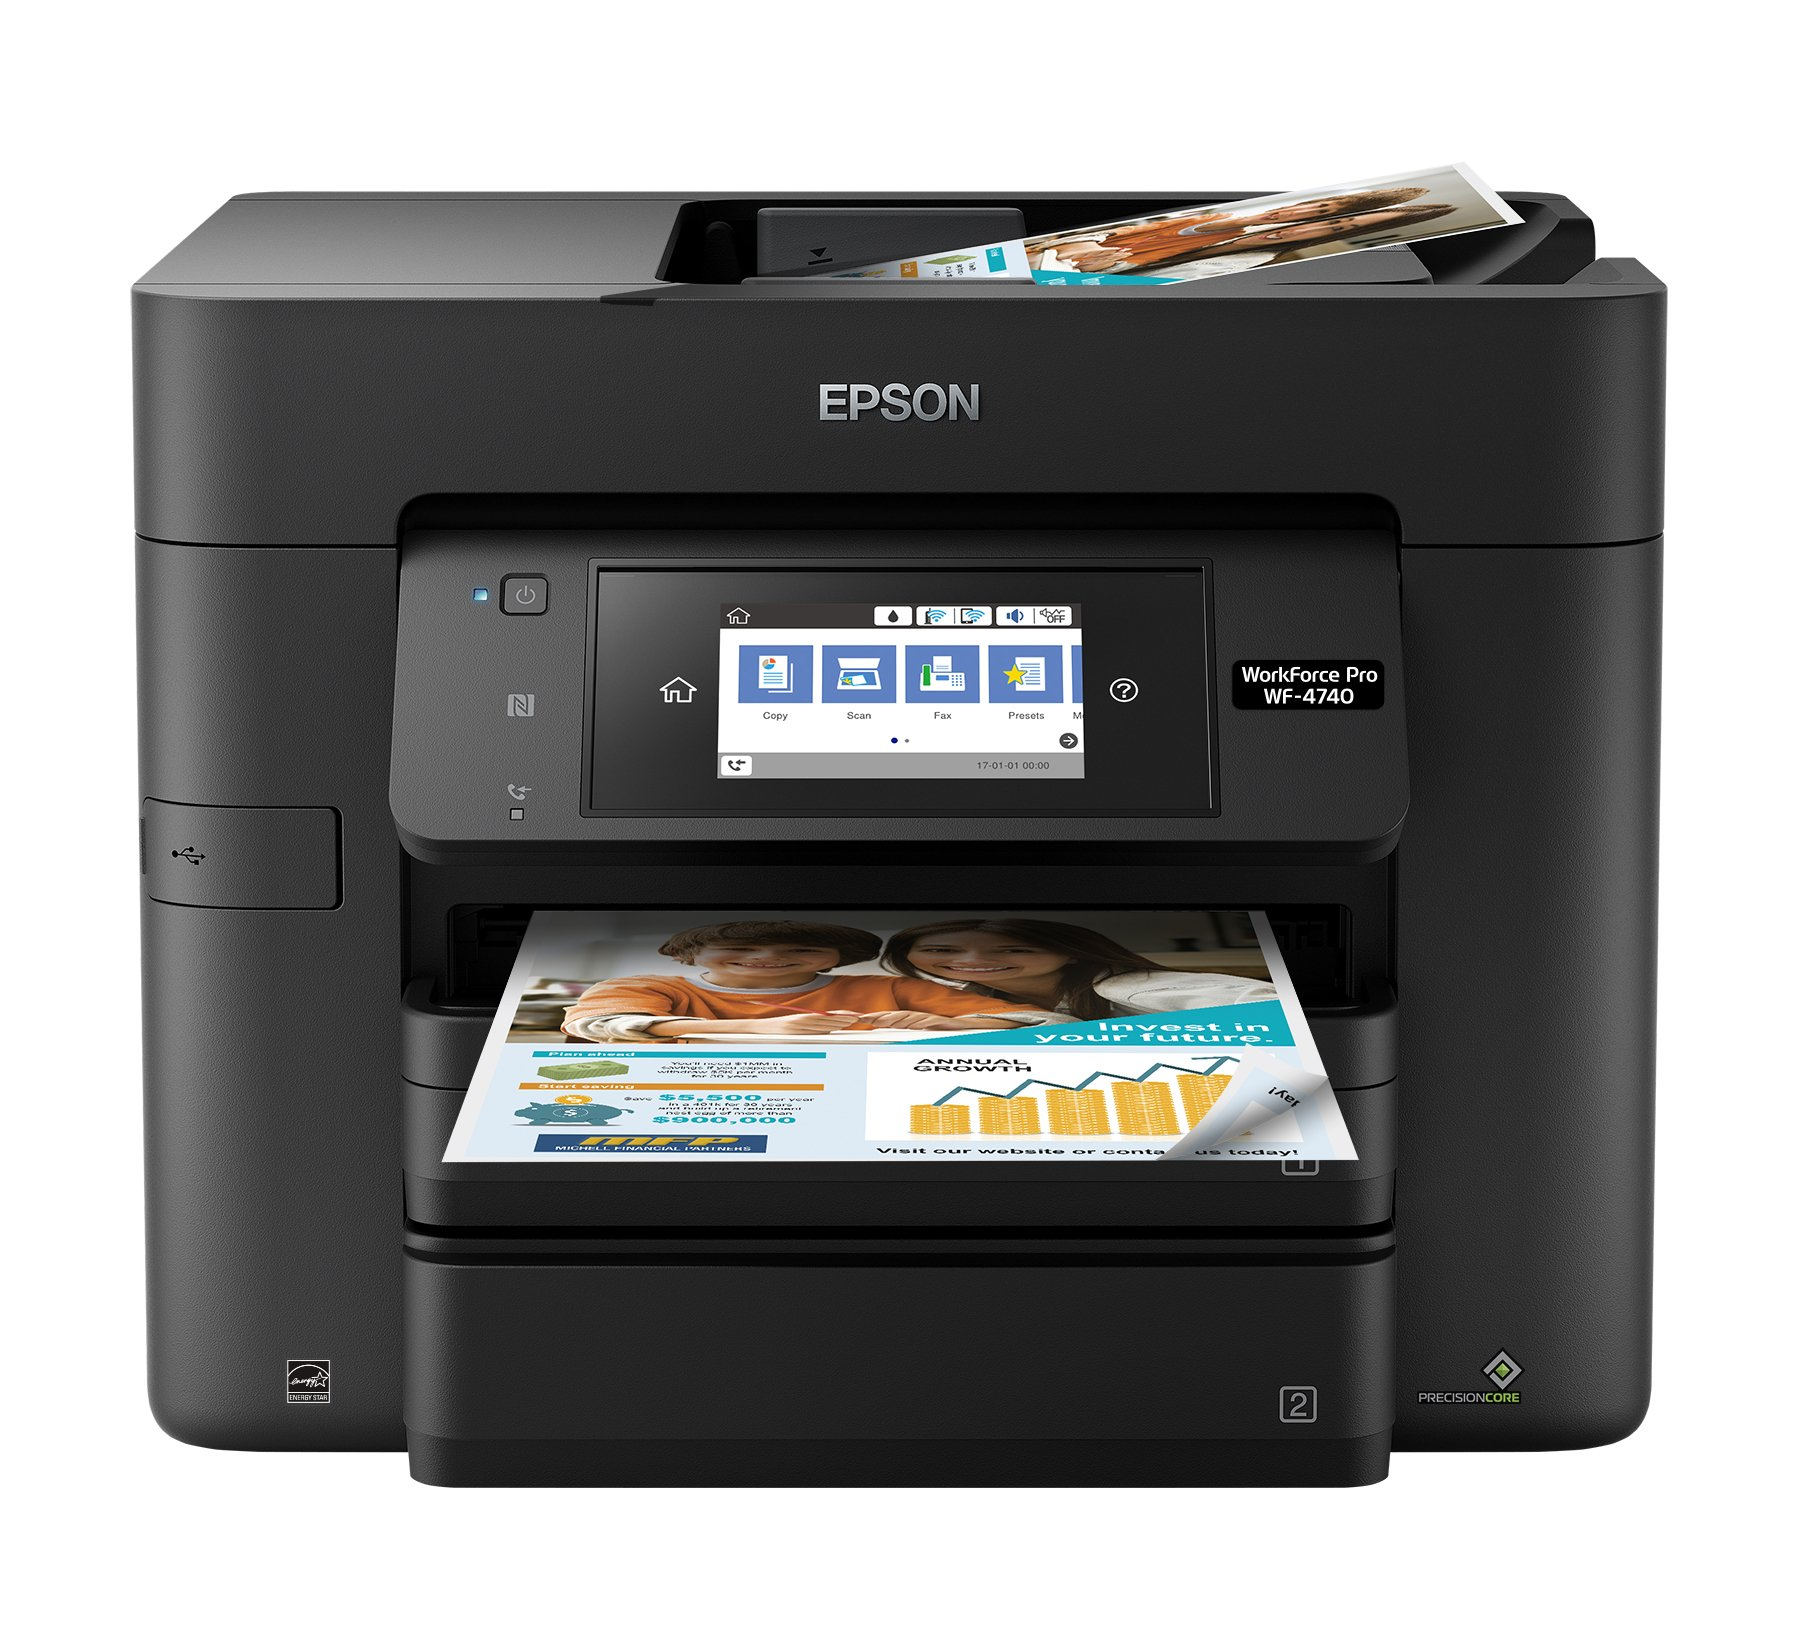 Epson WorkForce Pro WF-4740 Wireless All-in-One Color Inkjet Printer, Copier, Scanner with Wi-Fi Direct